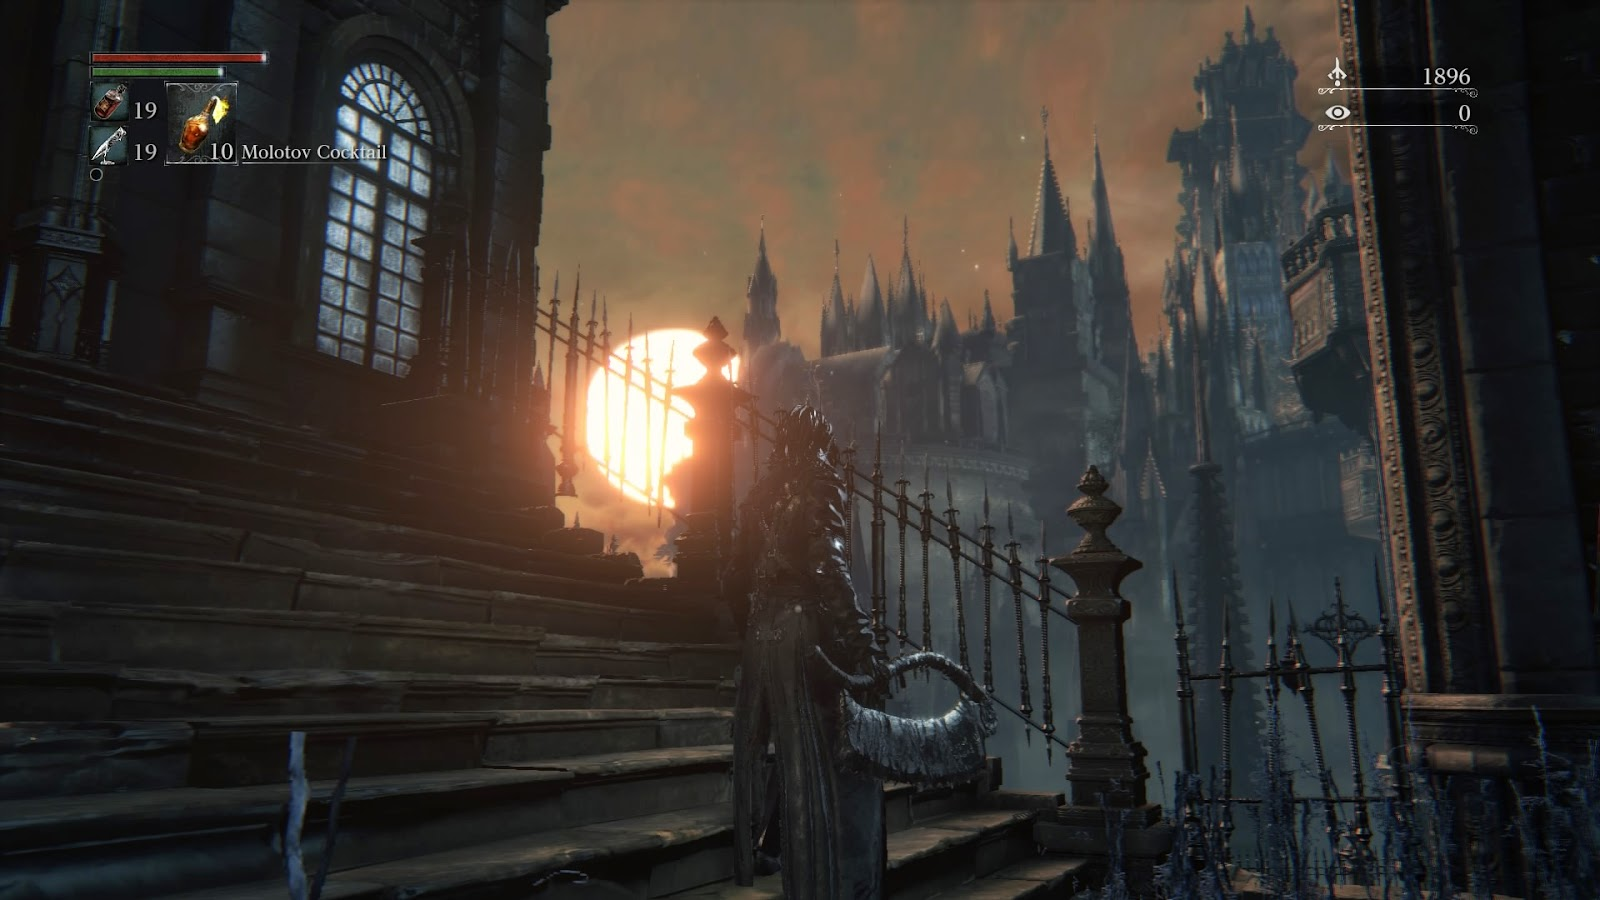 Bloodborne ps4 entendendo a hist ria parte 1 for Yharnam architecture